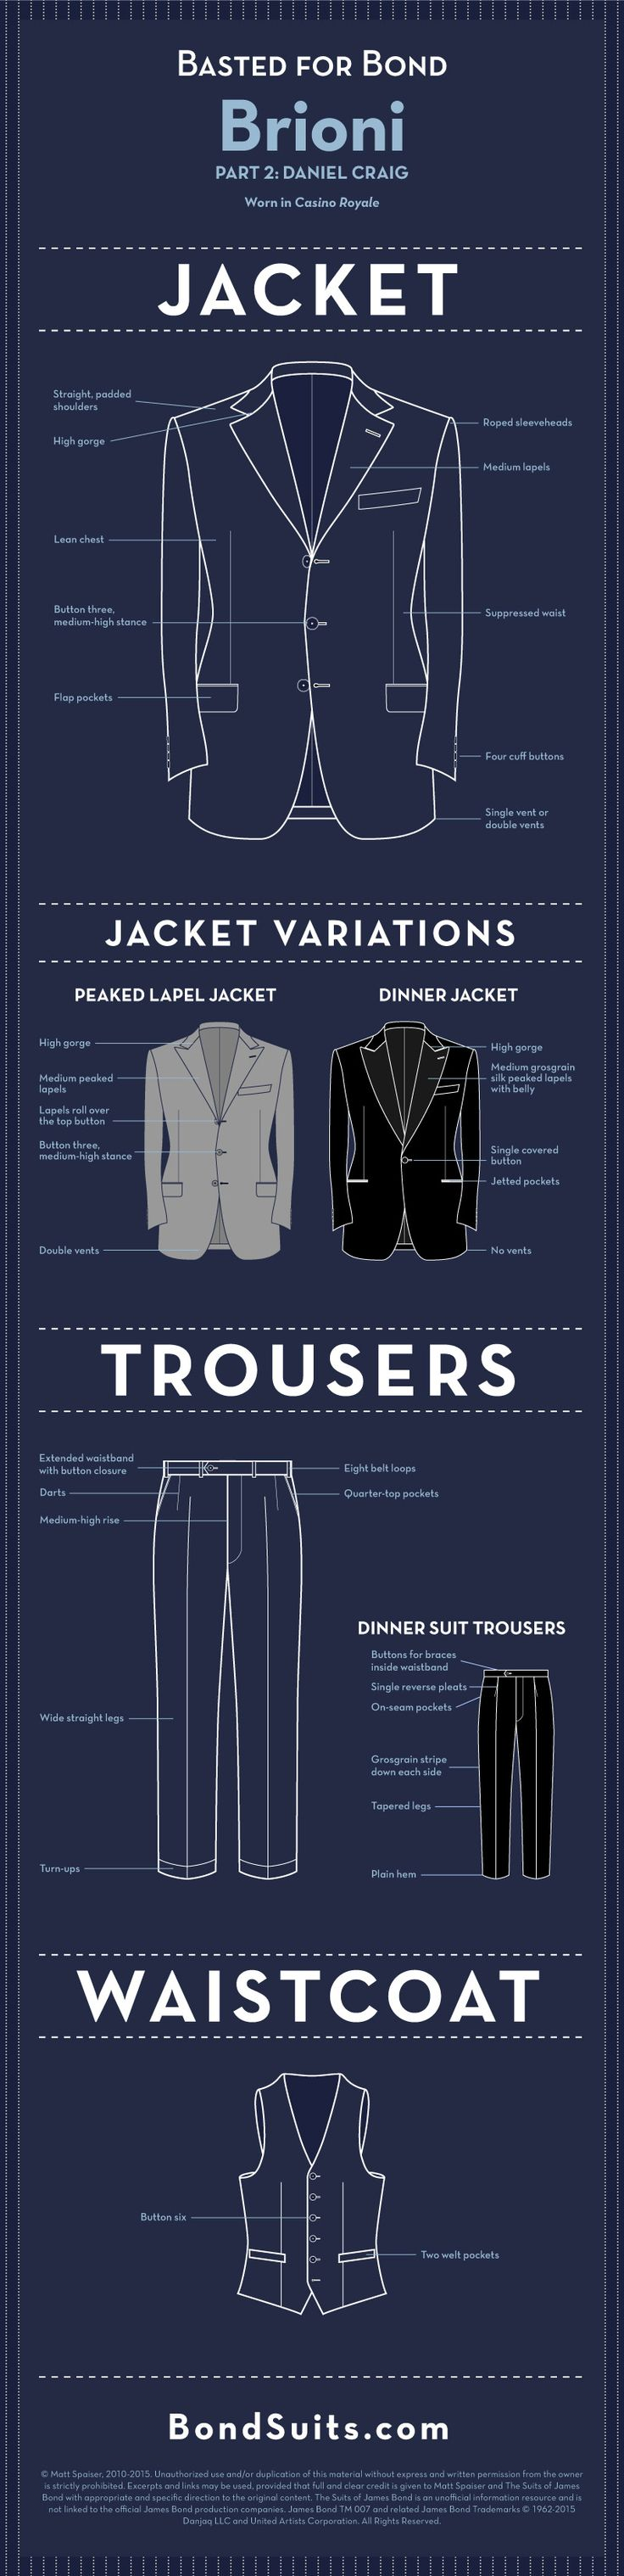 "Daniel Craig wears Brioni suits in only one James Bond film: Casino Royale. The latest ""Basted for Bond"" infographic features Craig's Brioni clothes, updated from Pierce Brosnan's. Though Craig's Brioni suit jackets still have the same strong Roman shoulders that Brosnan's suits … Continue reading →"